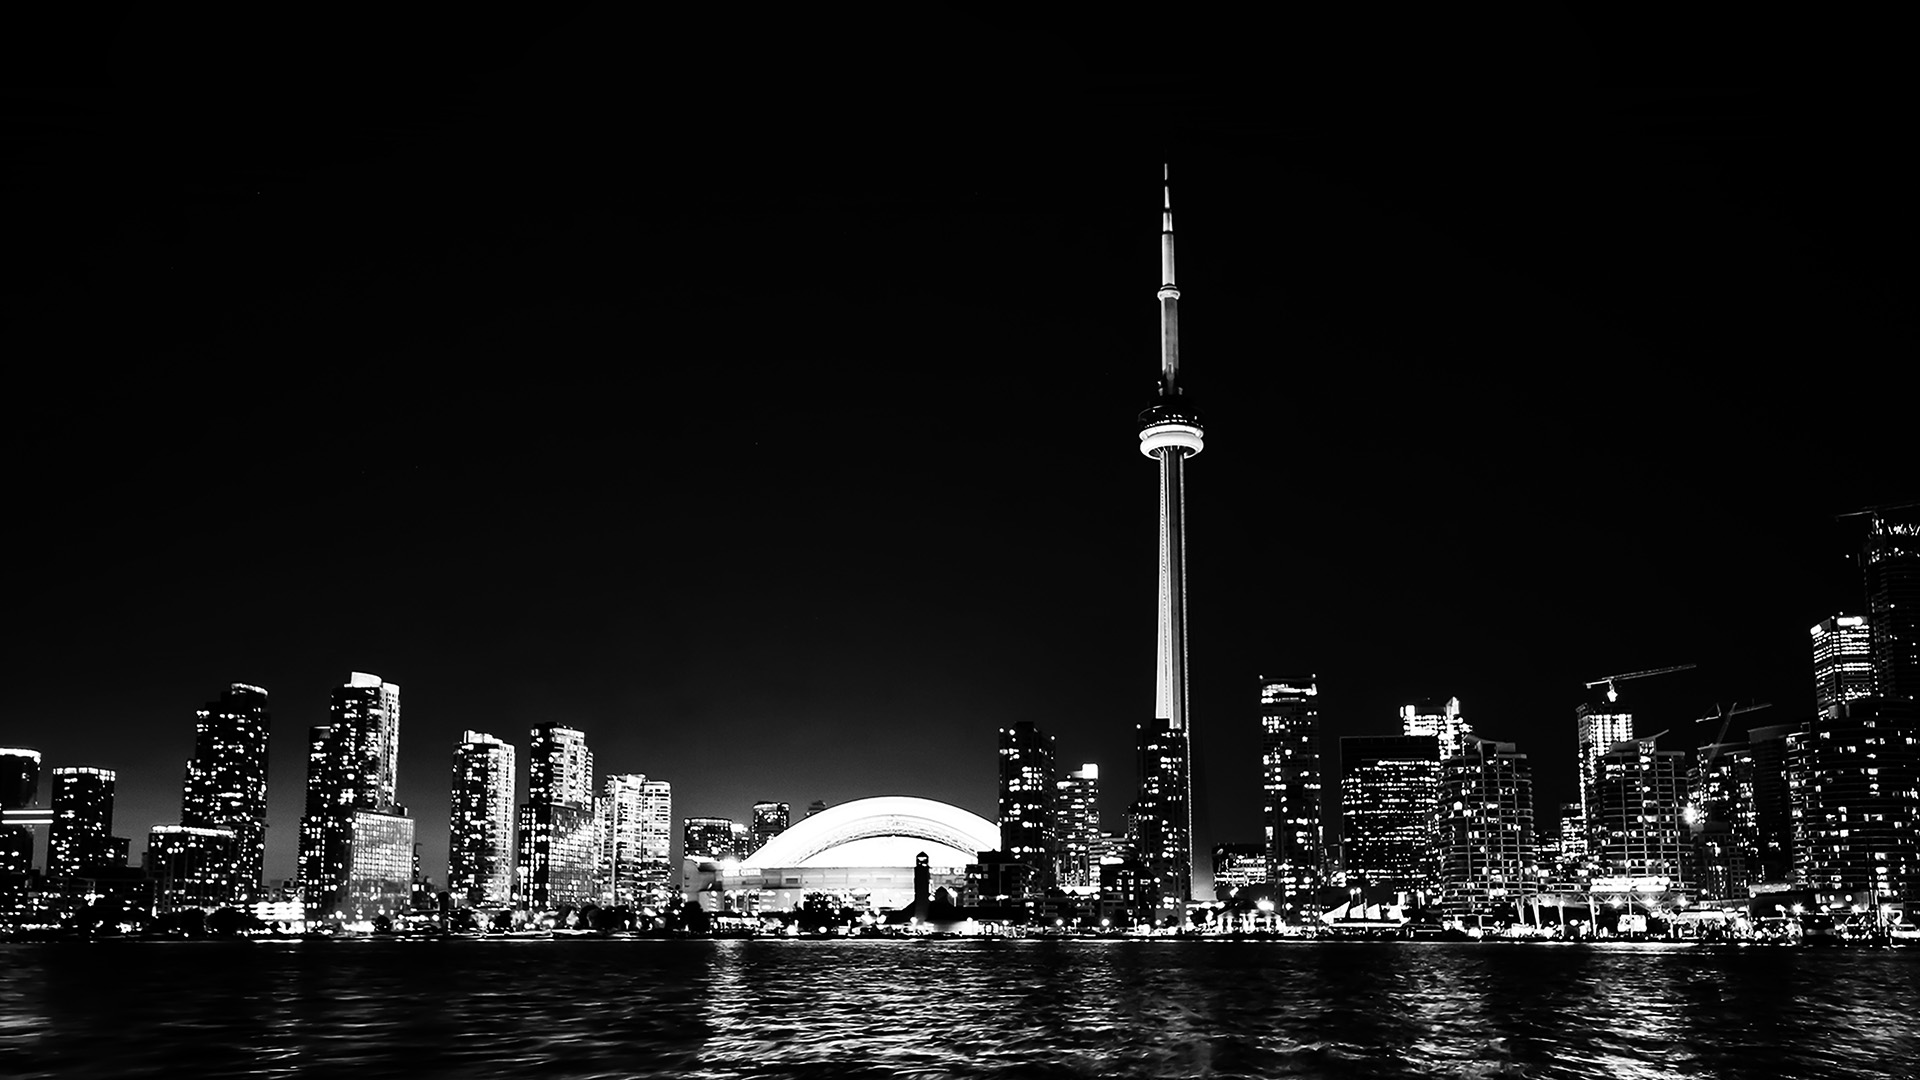 Fall Hd Wallpaper For Mac Mt45 Toronto City Night Missing Tower Dark Cityview Bw